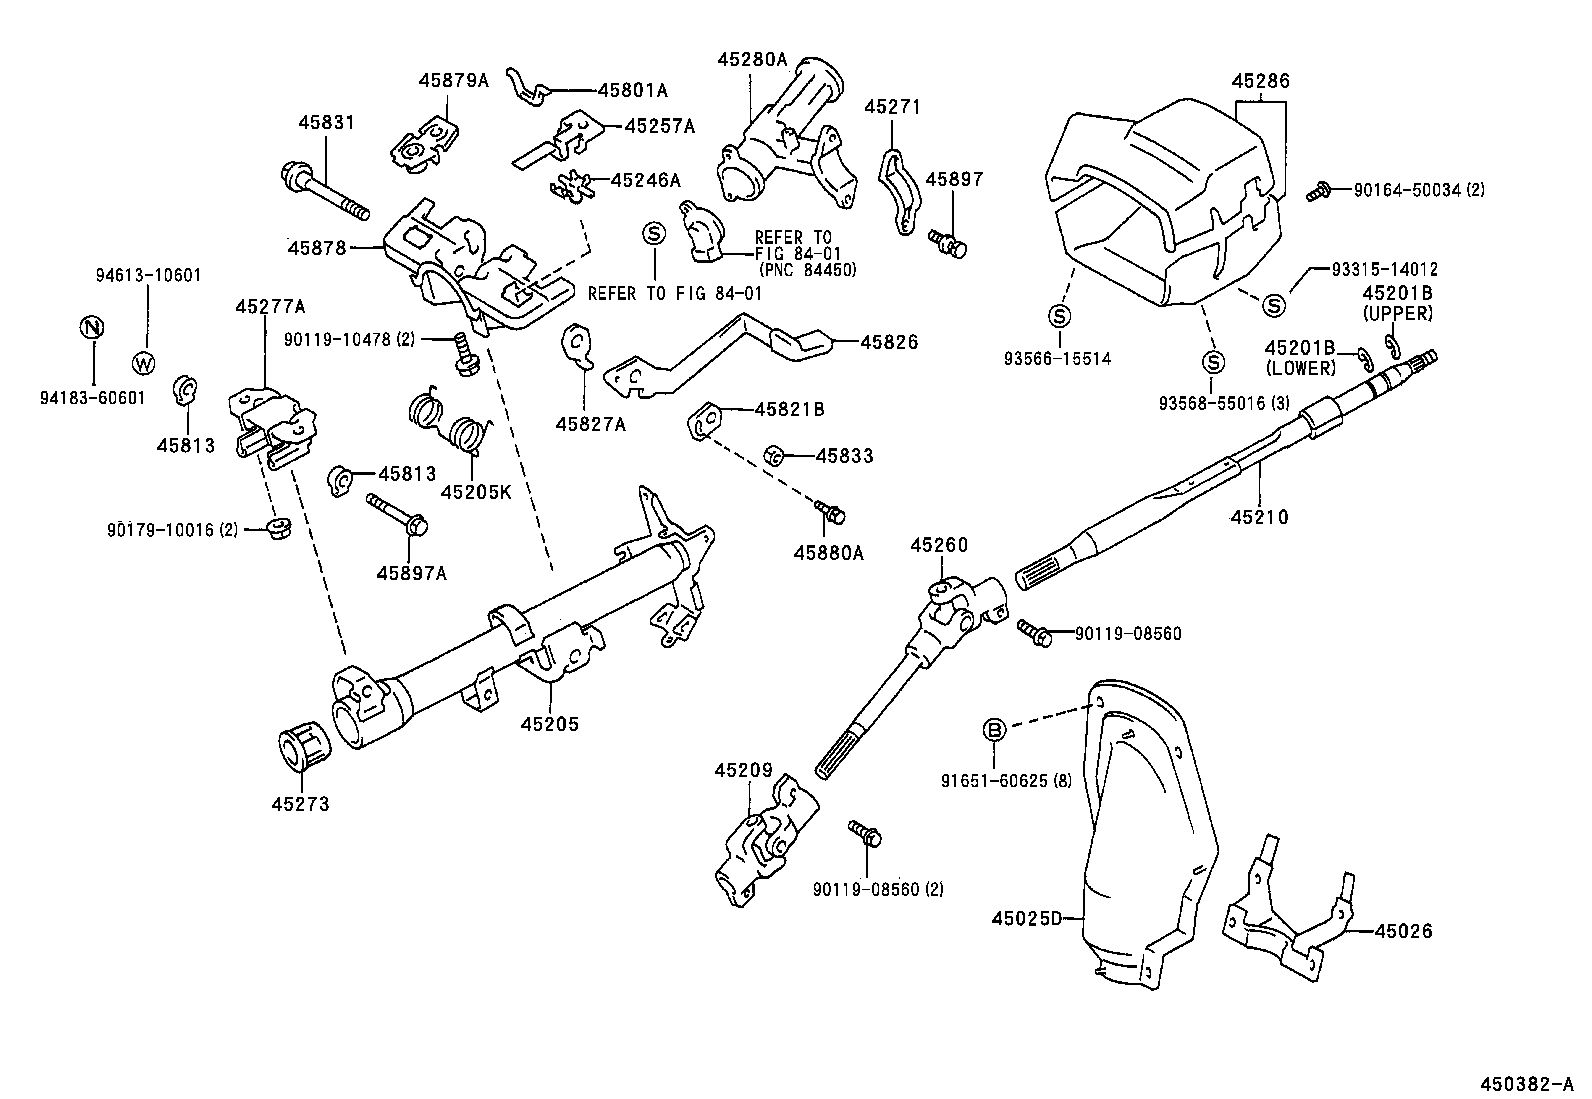 Steering Shaft Diagram Wiring Will Be A Thing 96 Celica Gt Radio Wire Toyota Corollaae110r Aepek Powertrain Chassis Cj7 Column 1991 Chevy Silverado